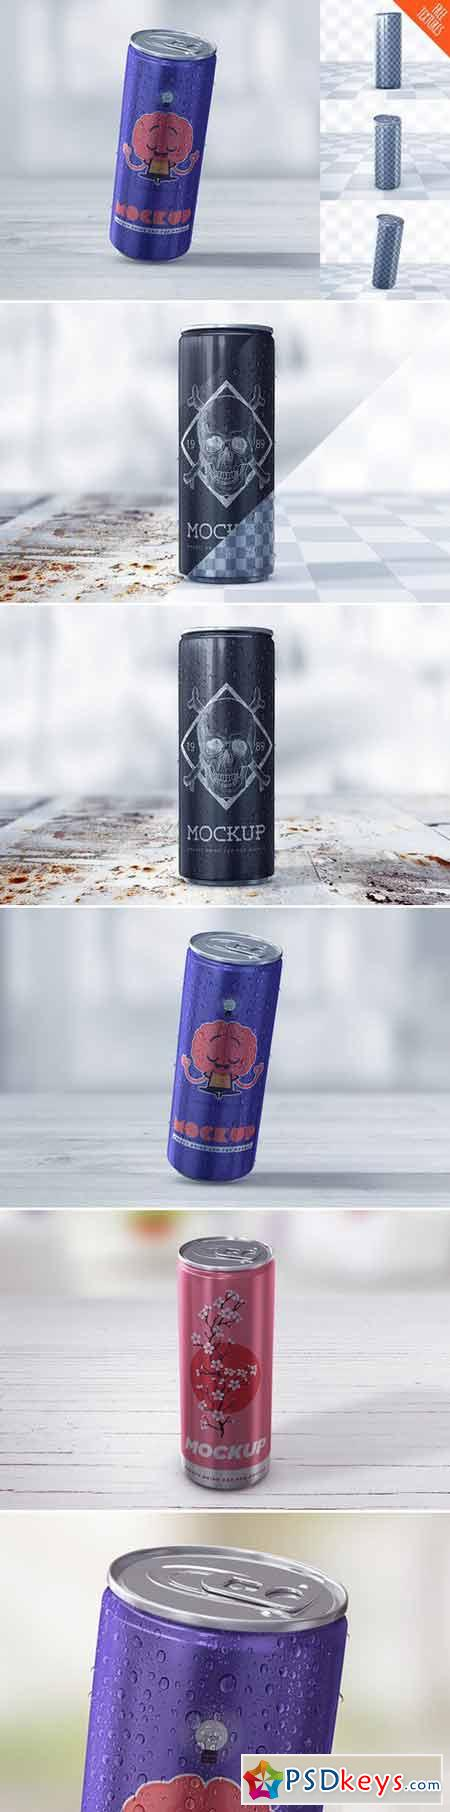 Energy Drink Can Mockup 415607